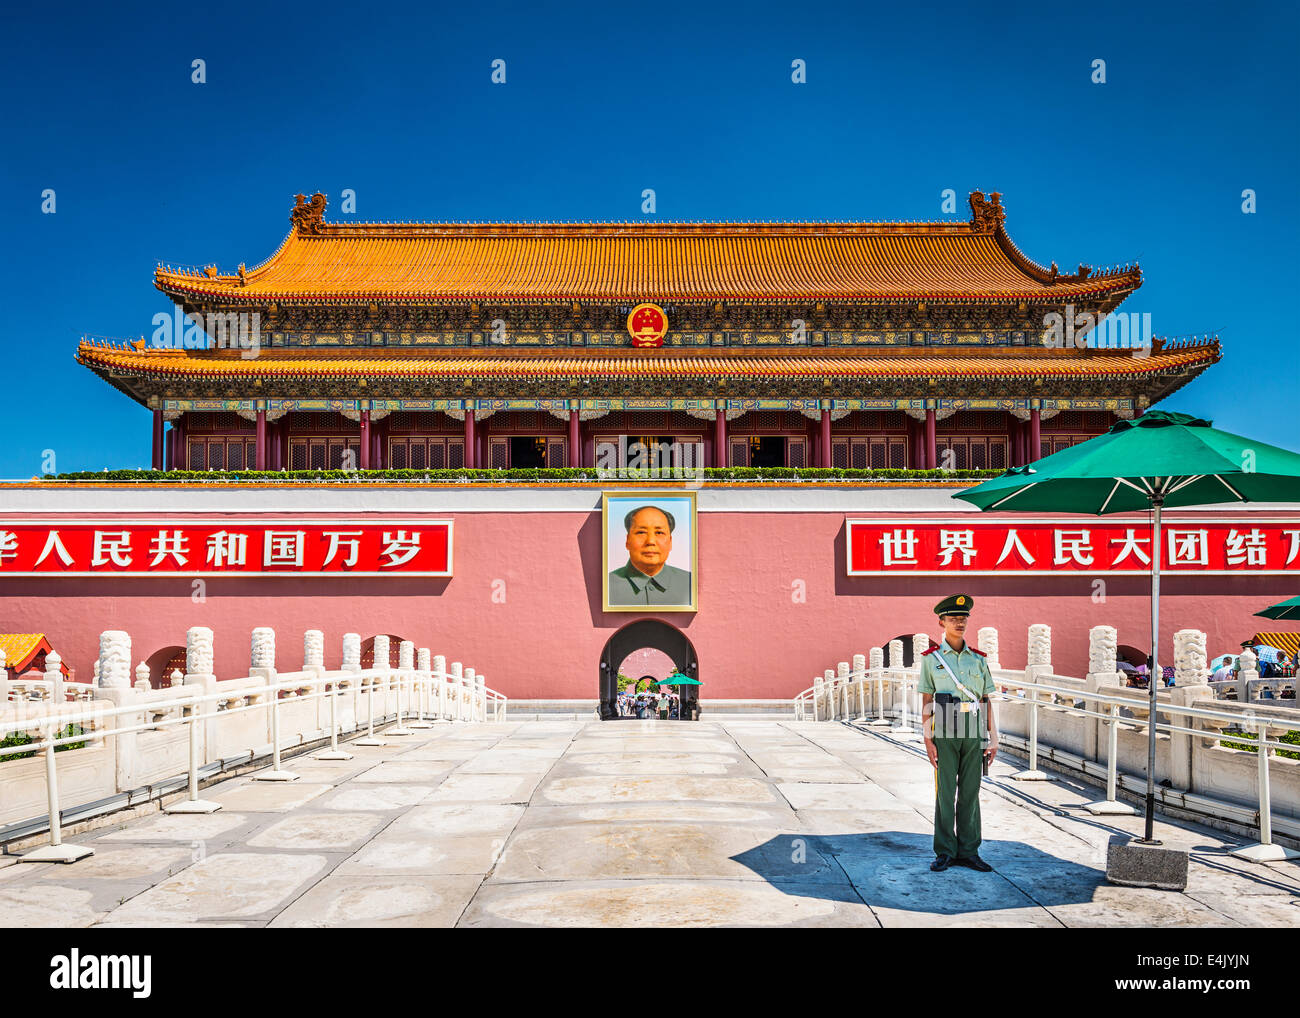 Tiananmen Gate in Beijing, China. Stock Photo